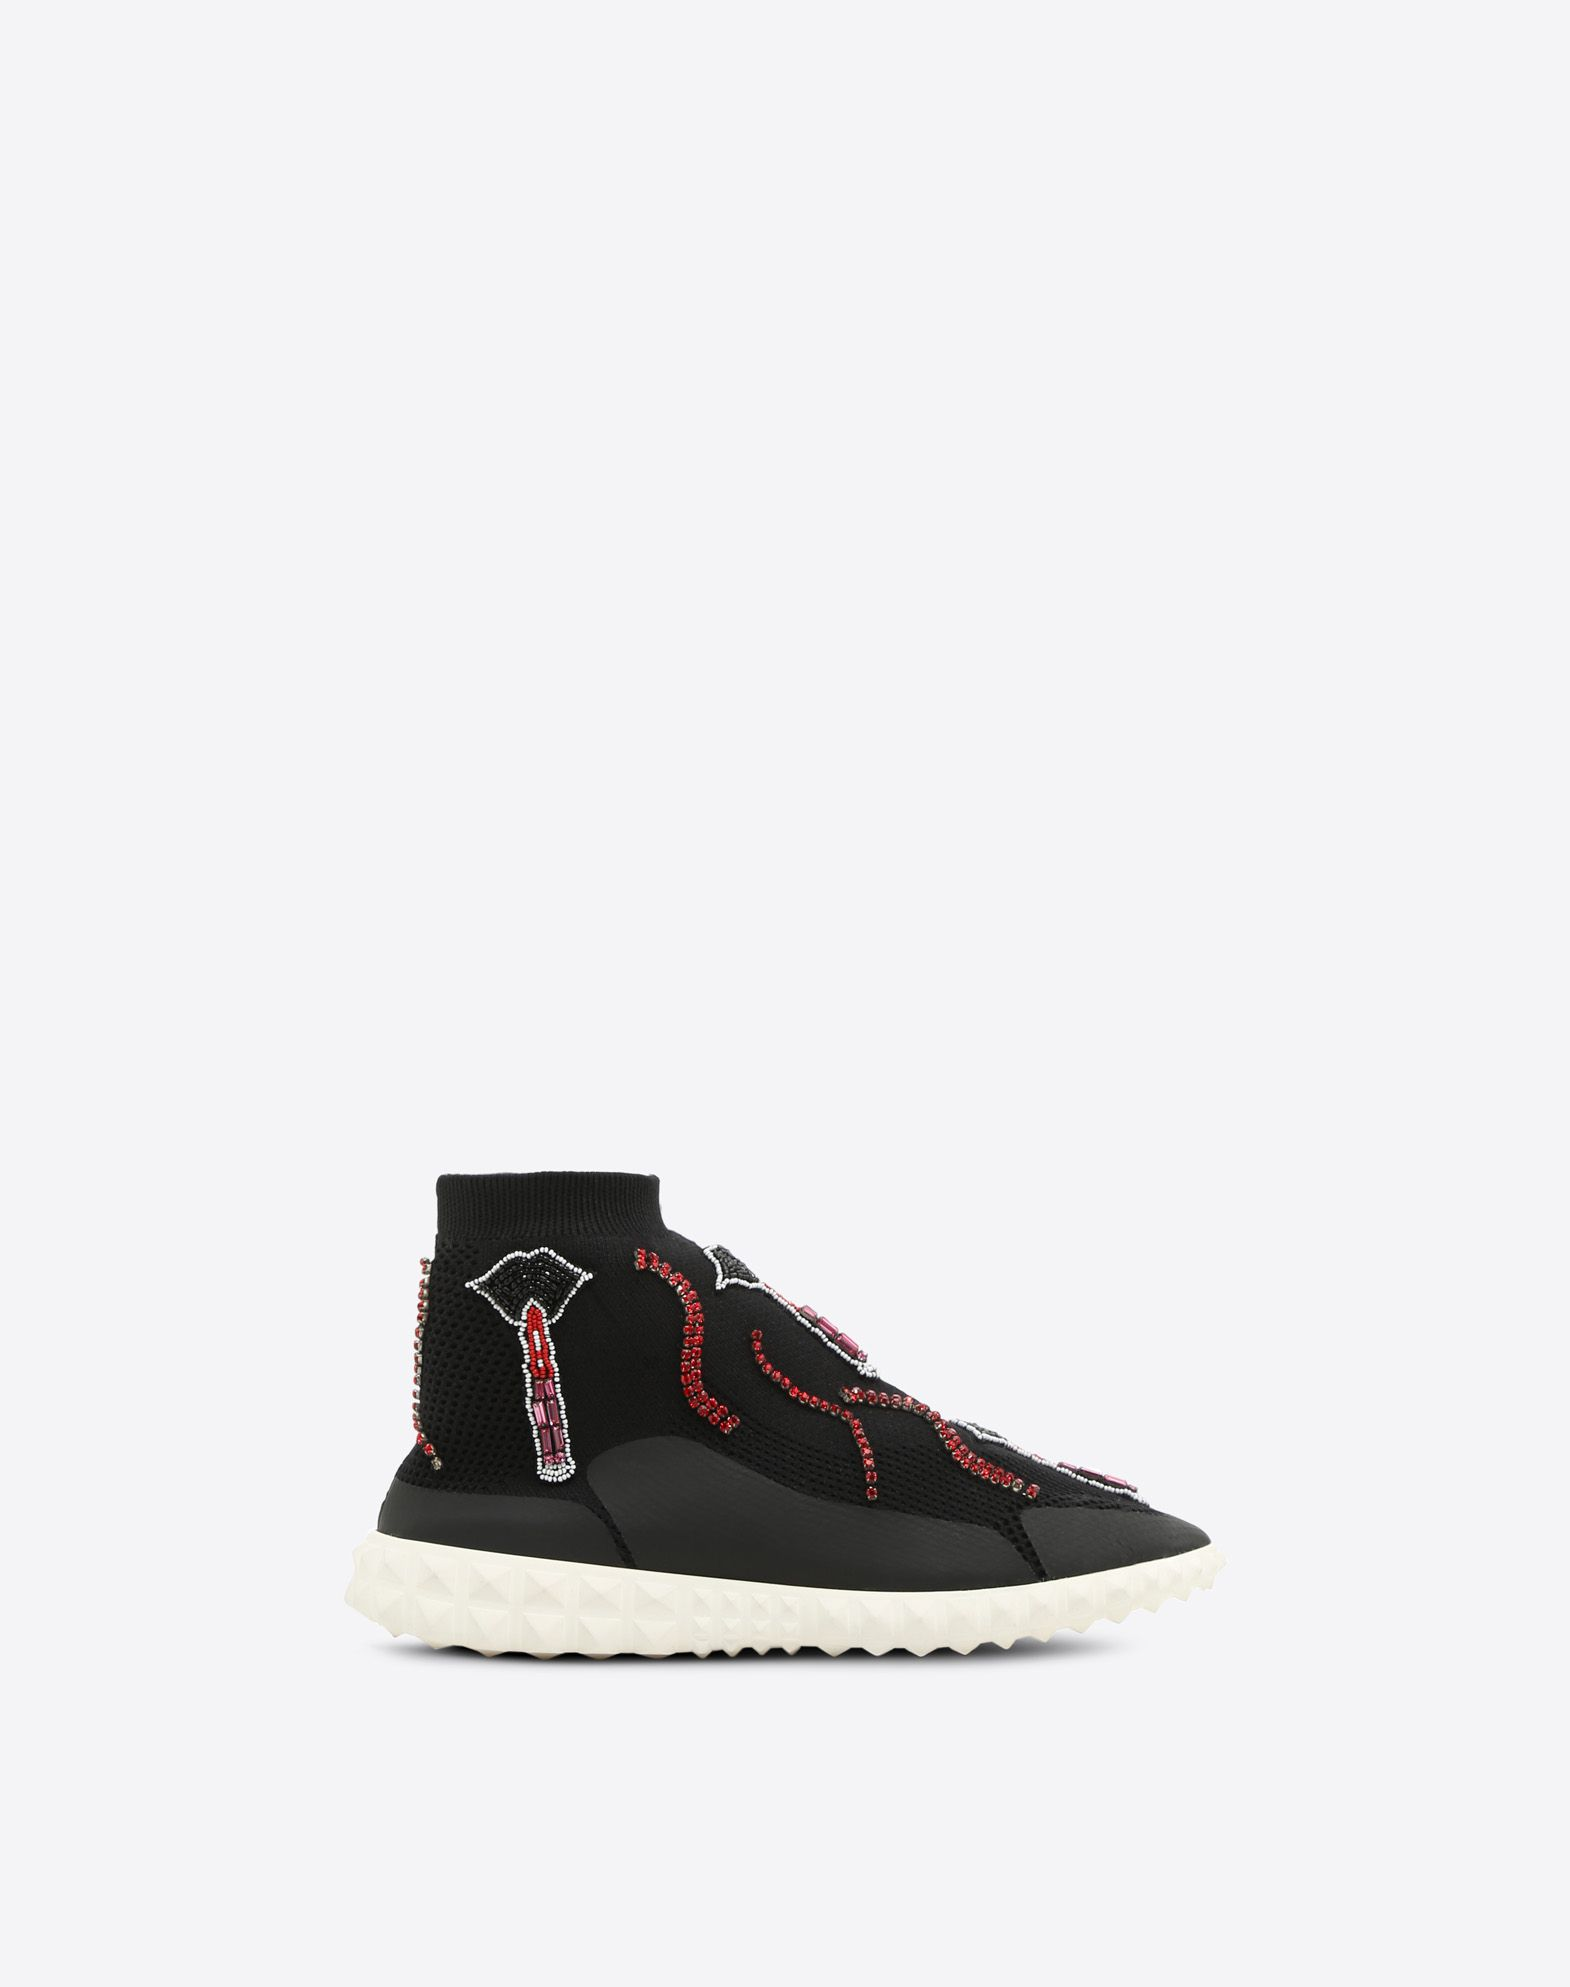 VALENTINO Knitted Round toeline Rubber sole  11413283bm